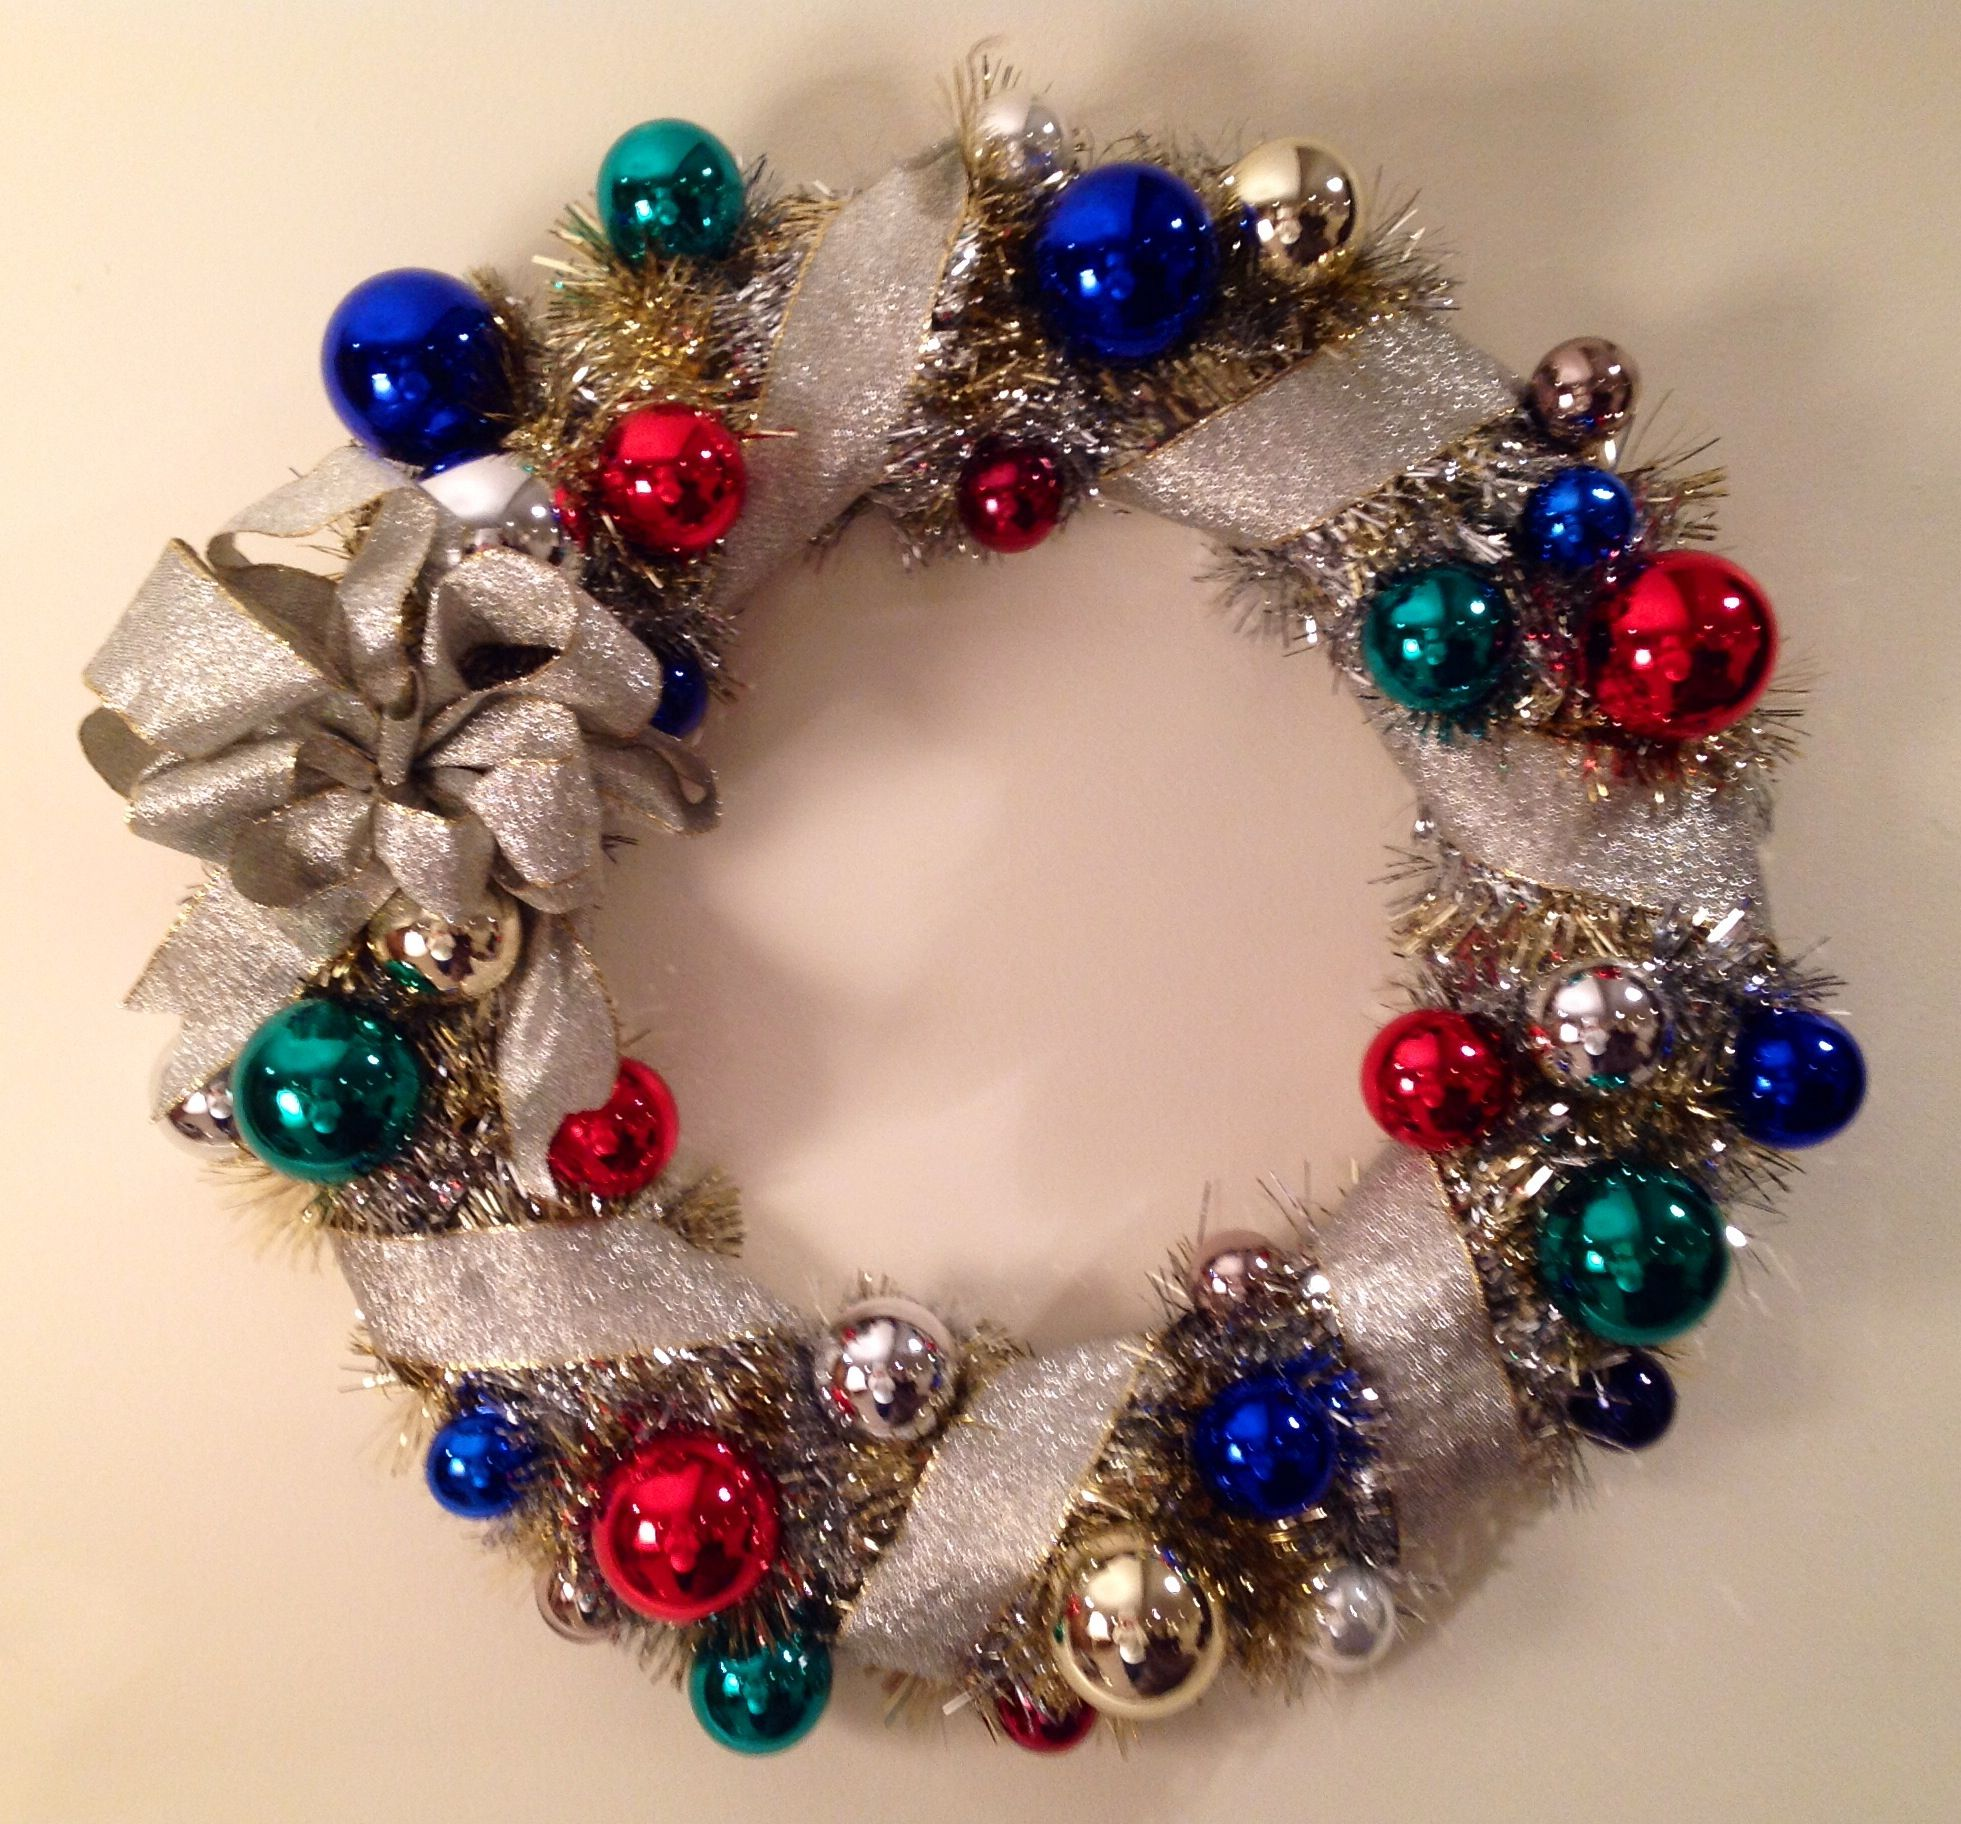 Christmas craft wreath made with glass ornaments. Start